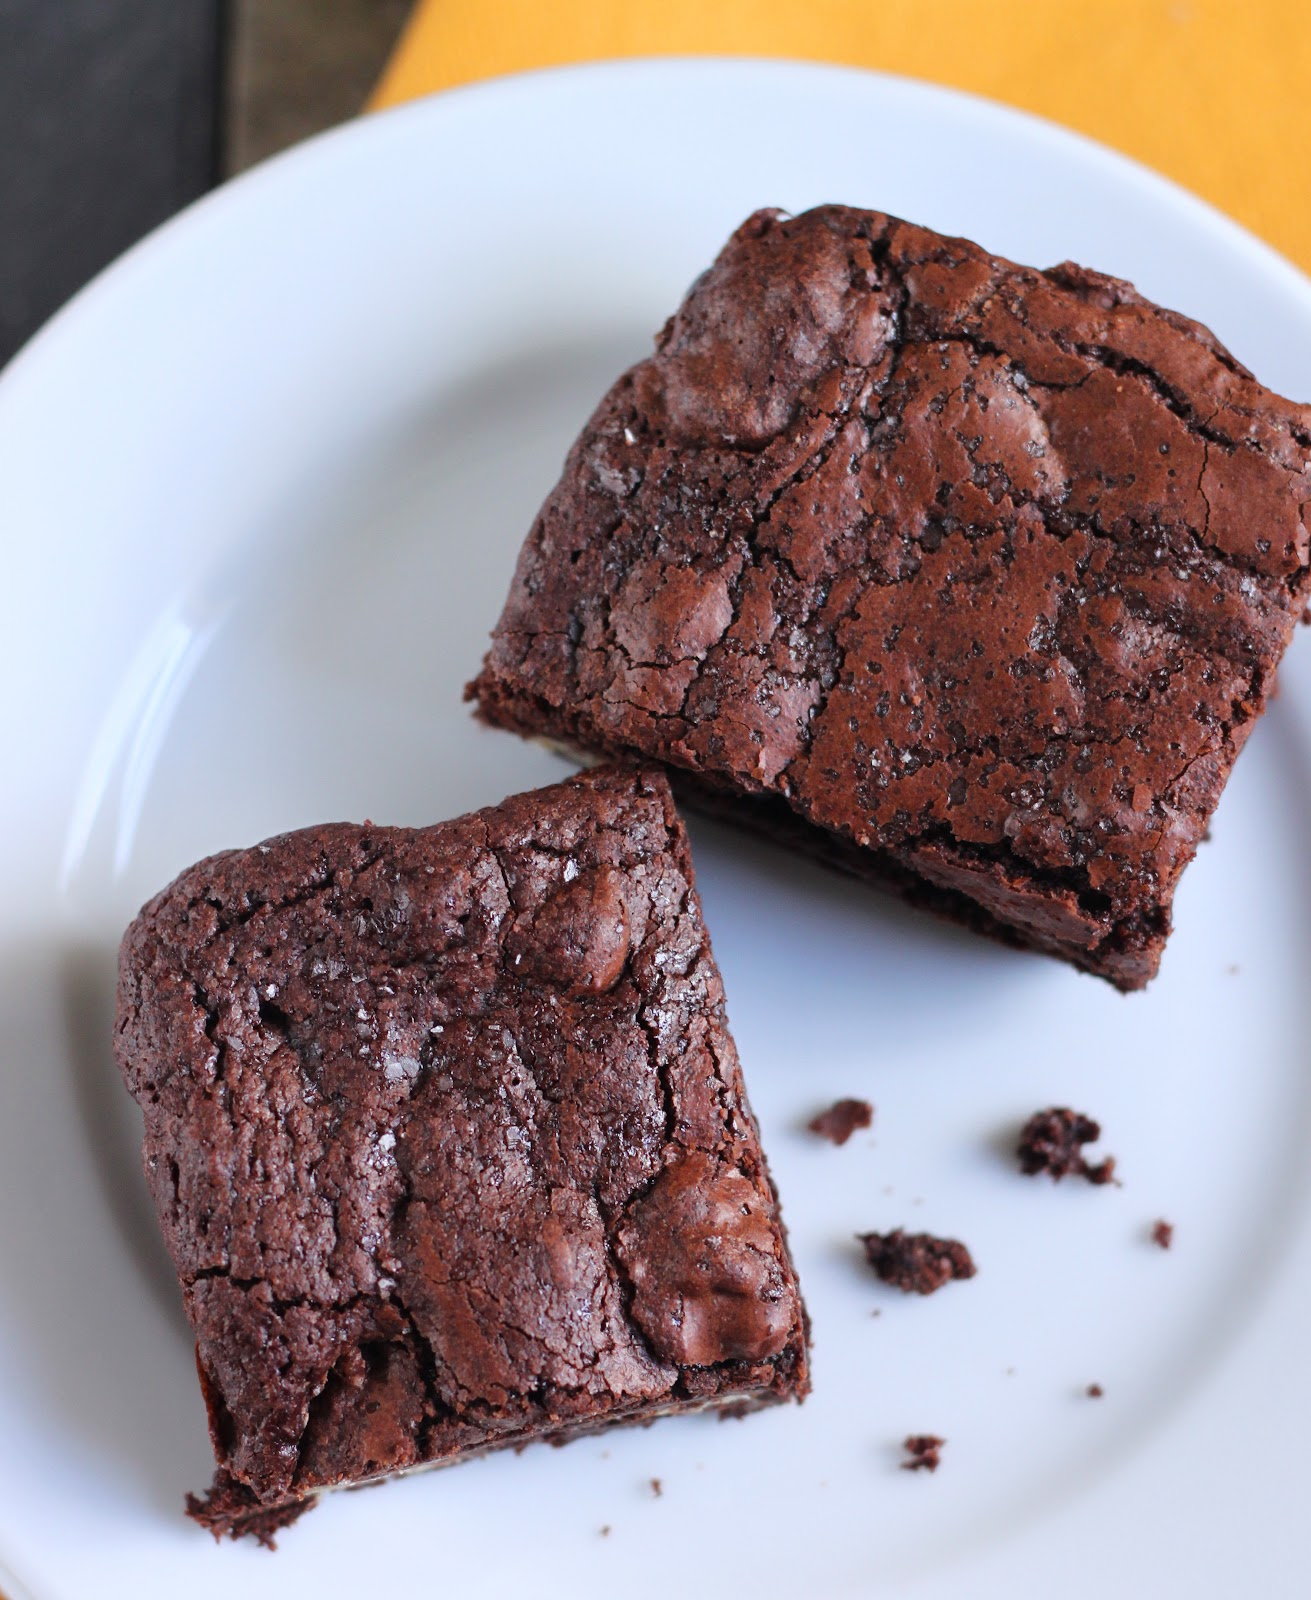 ... : Cocoa Brownies with Browned Butter... Best-Ever Brownies